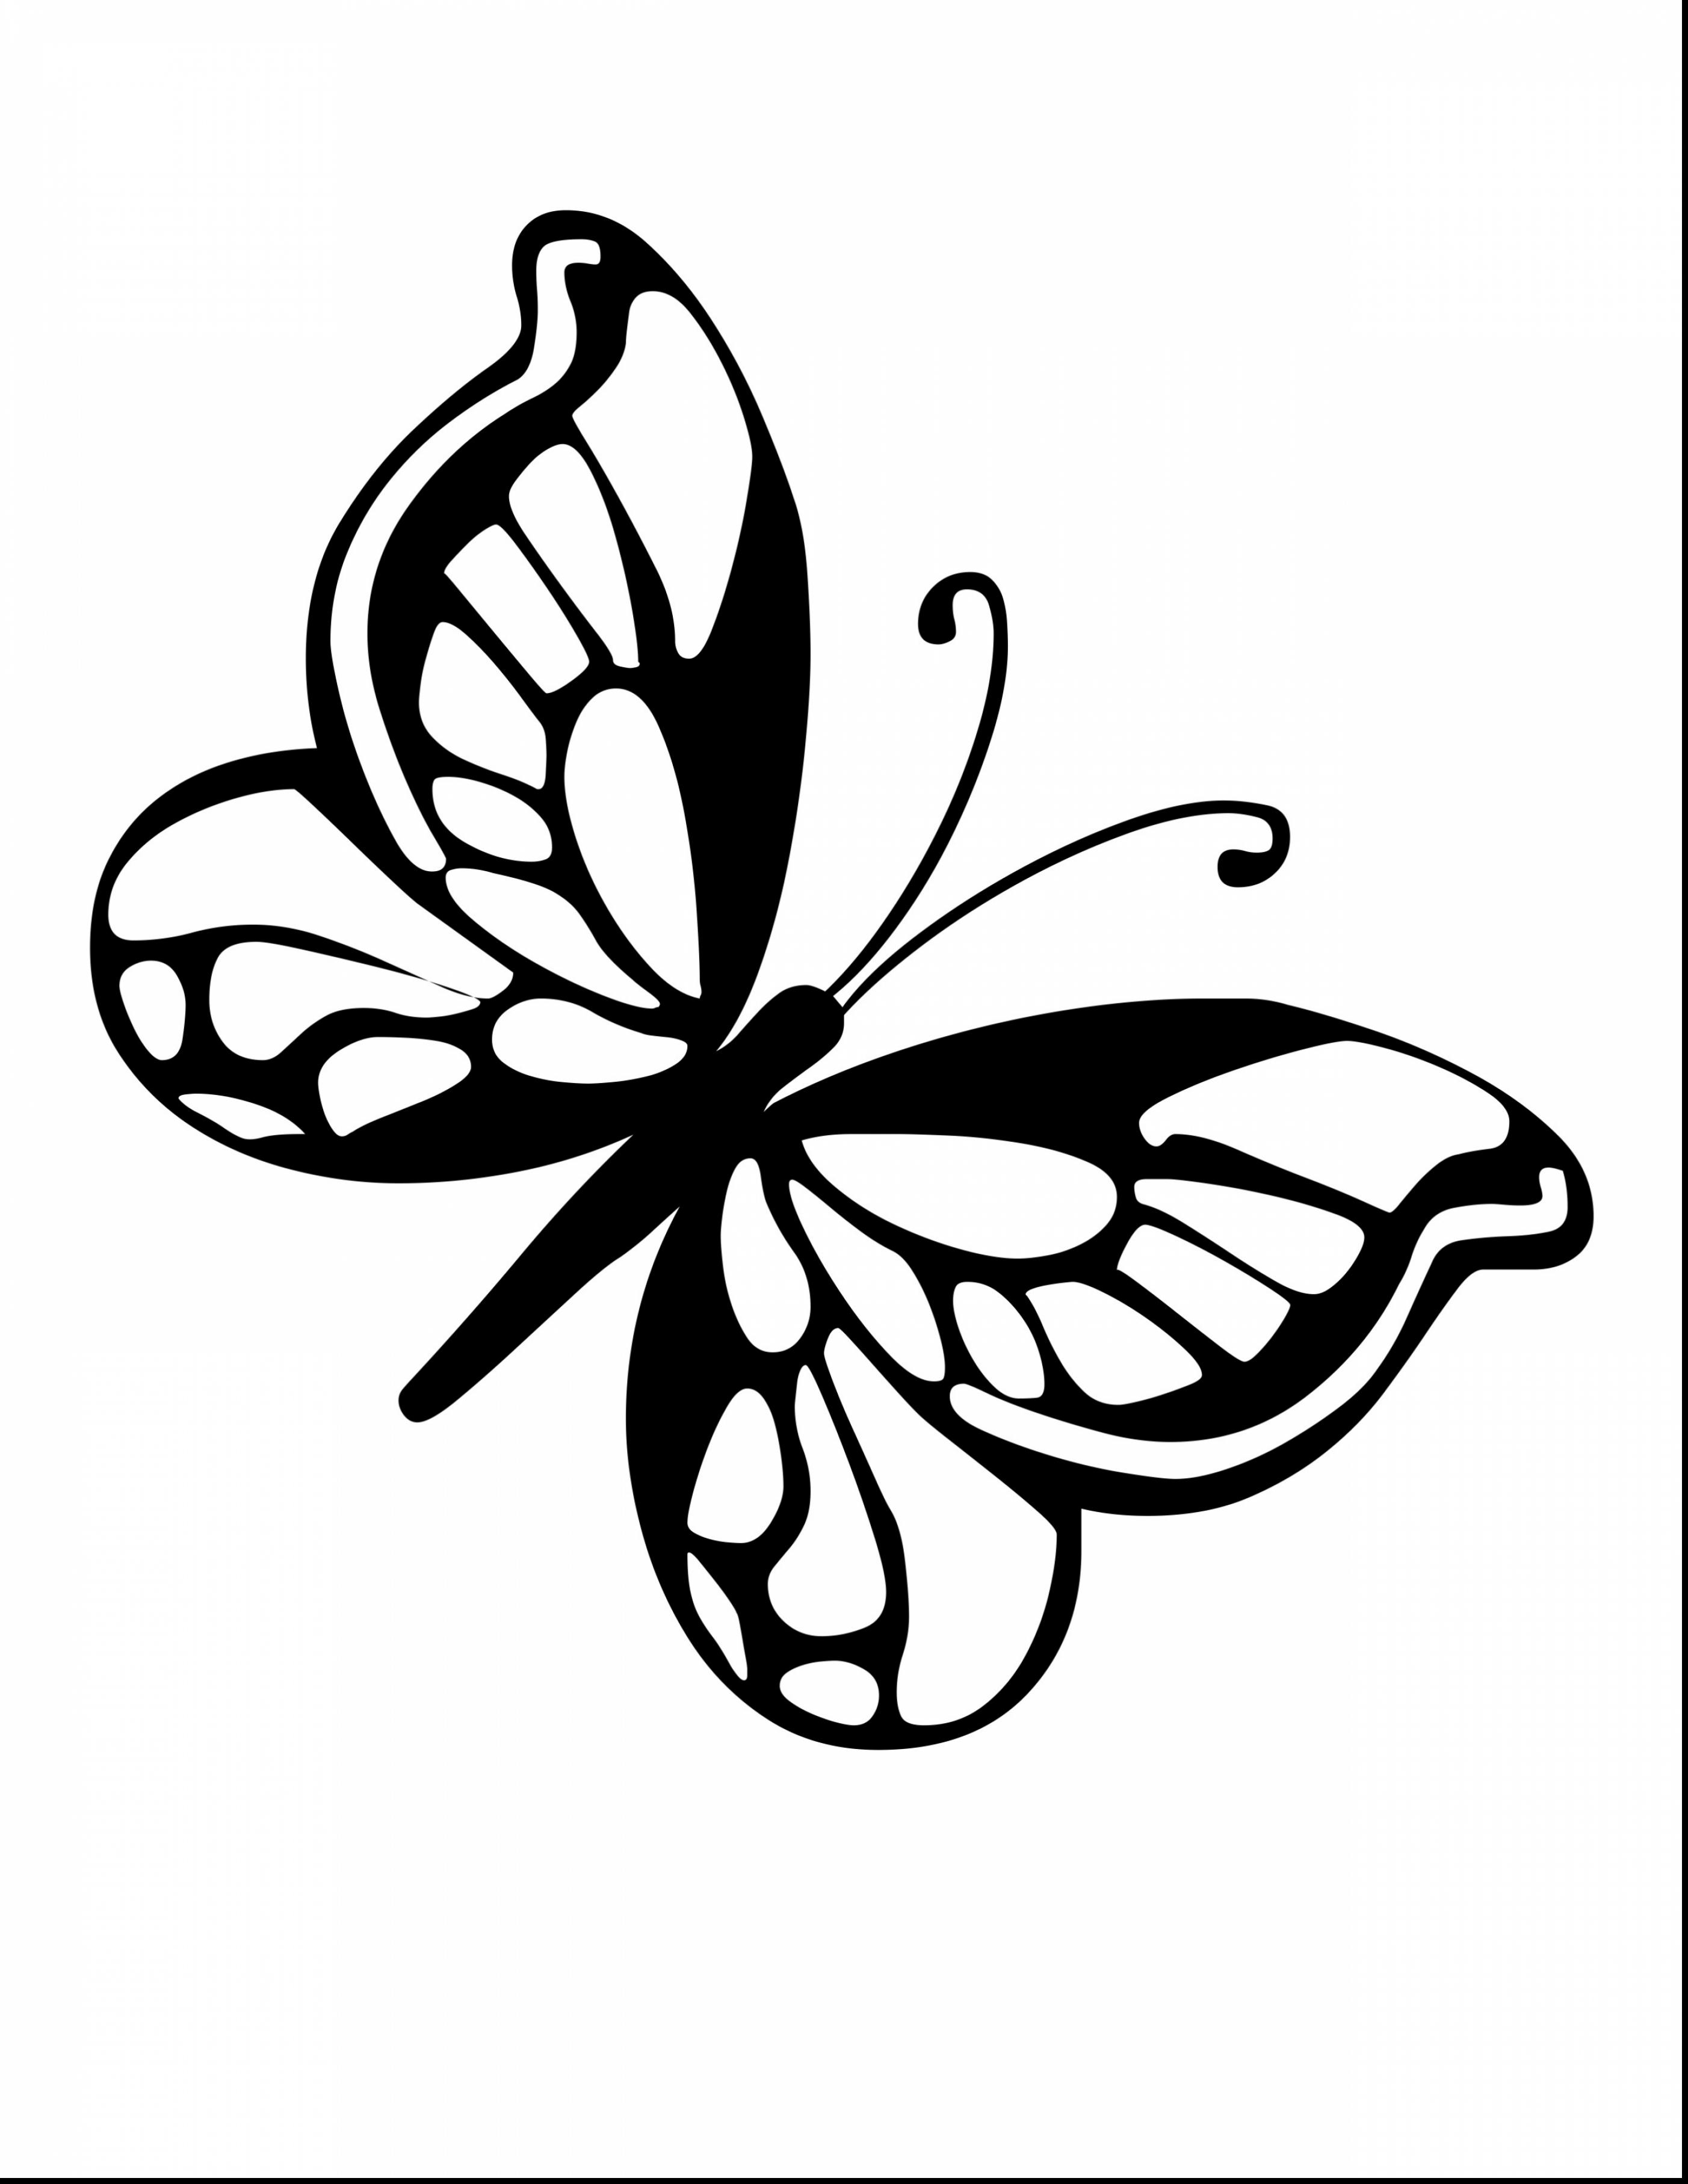 small butterfly coloring pages small butterfly coloring pages hellokidscom butterfly small coloring pages